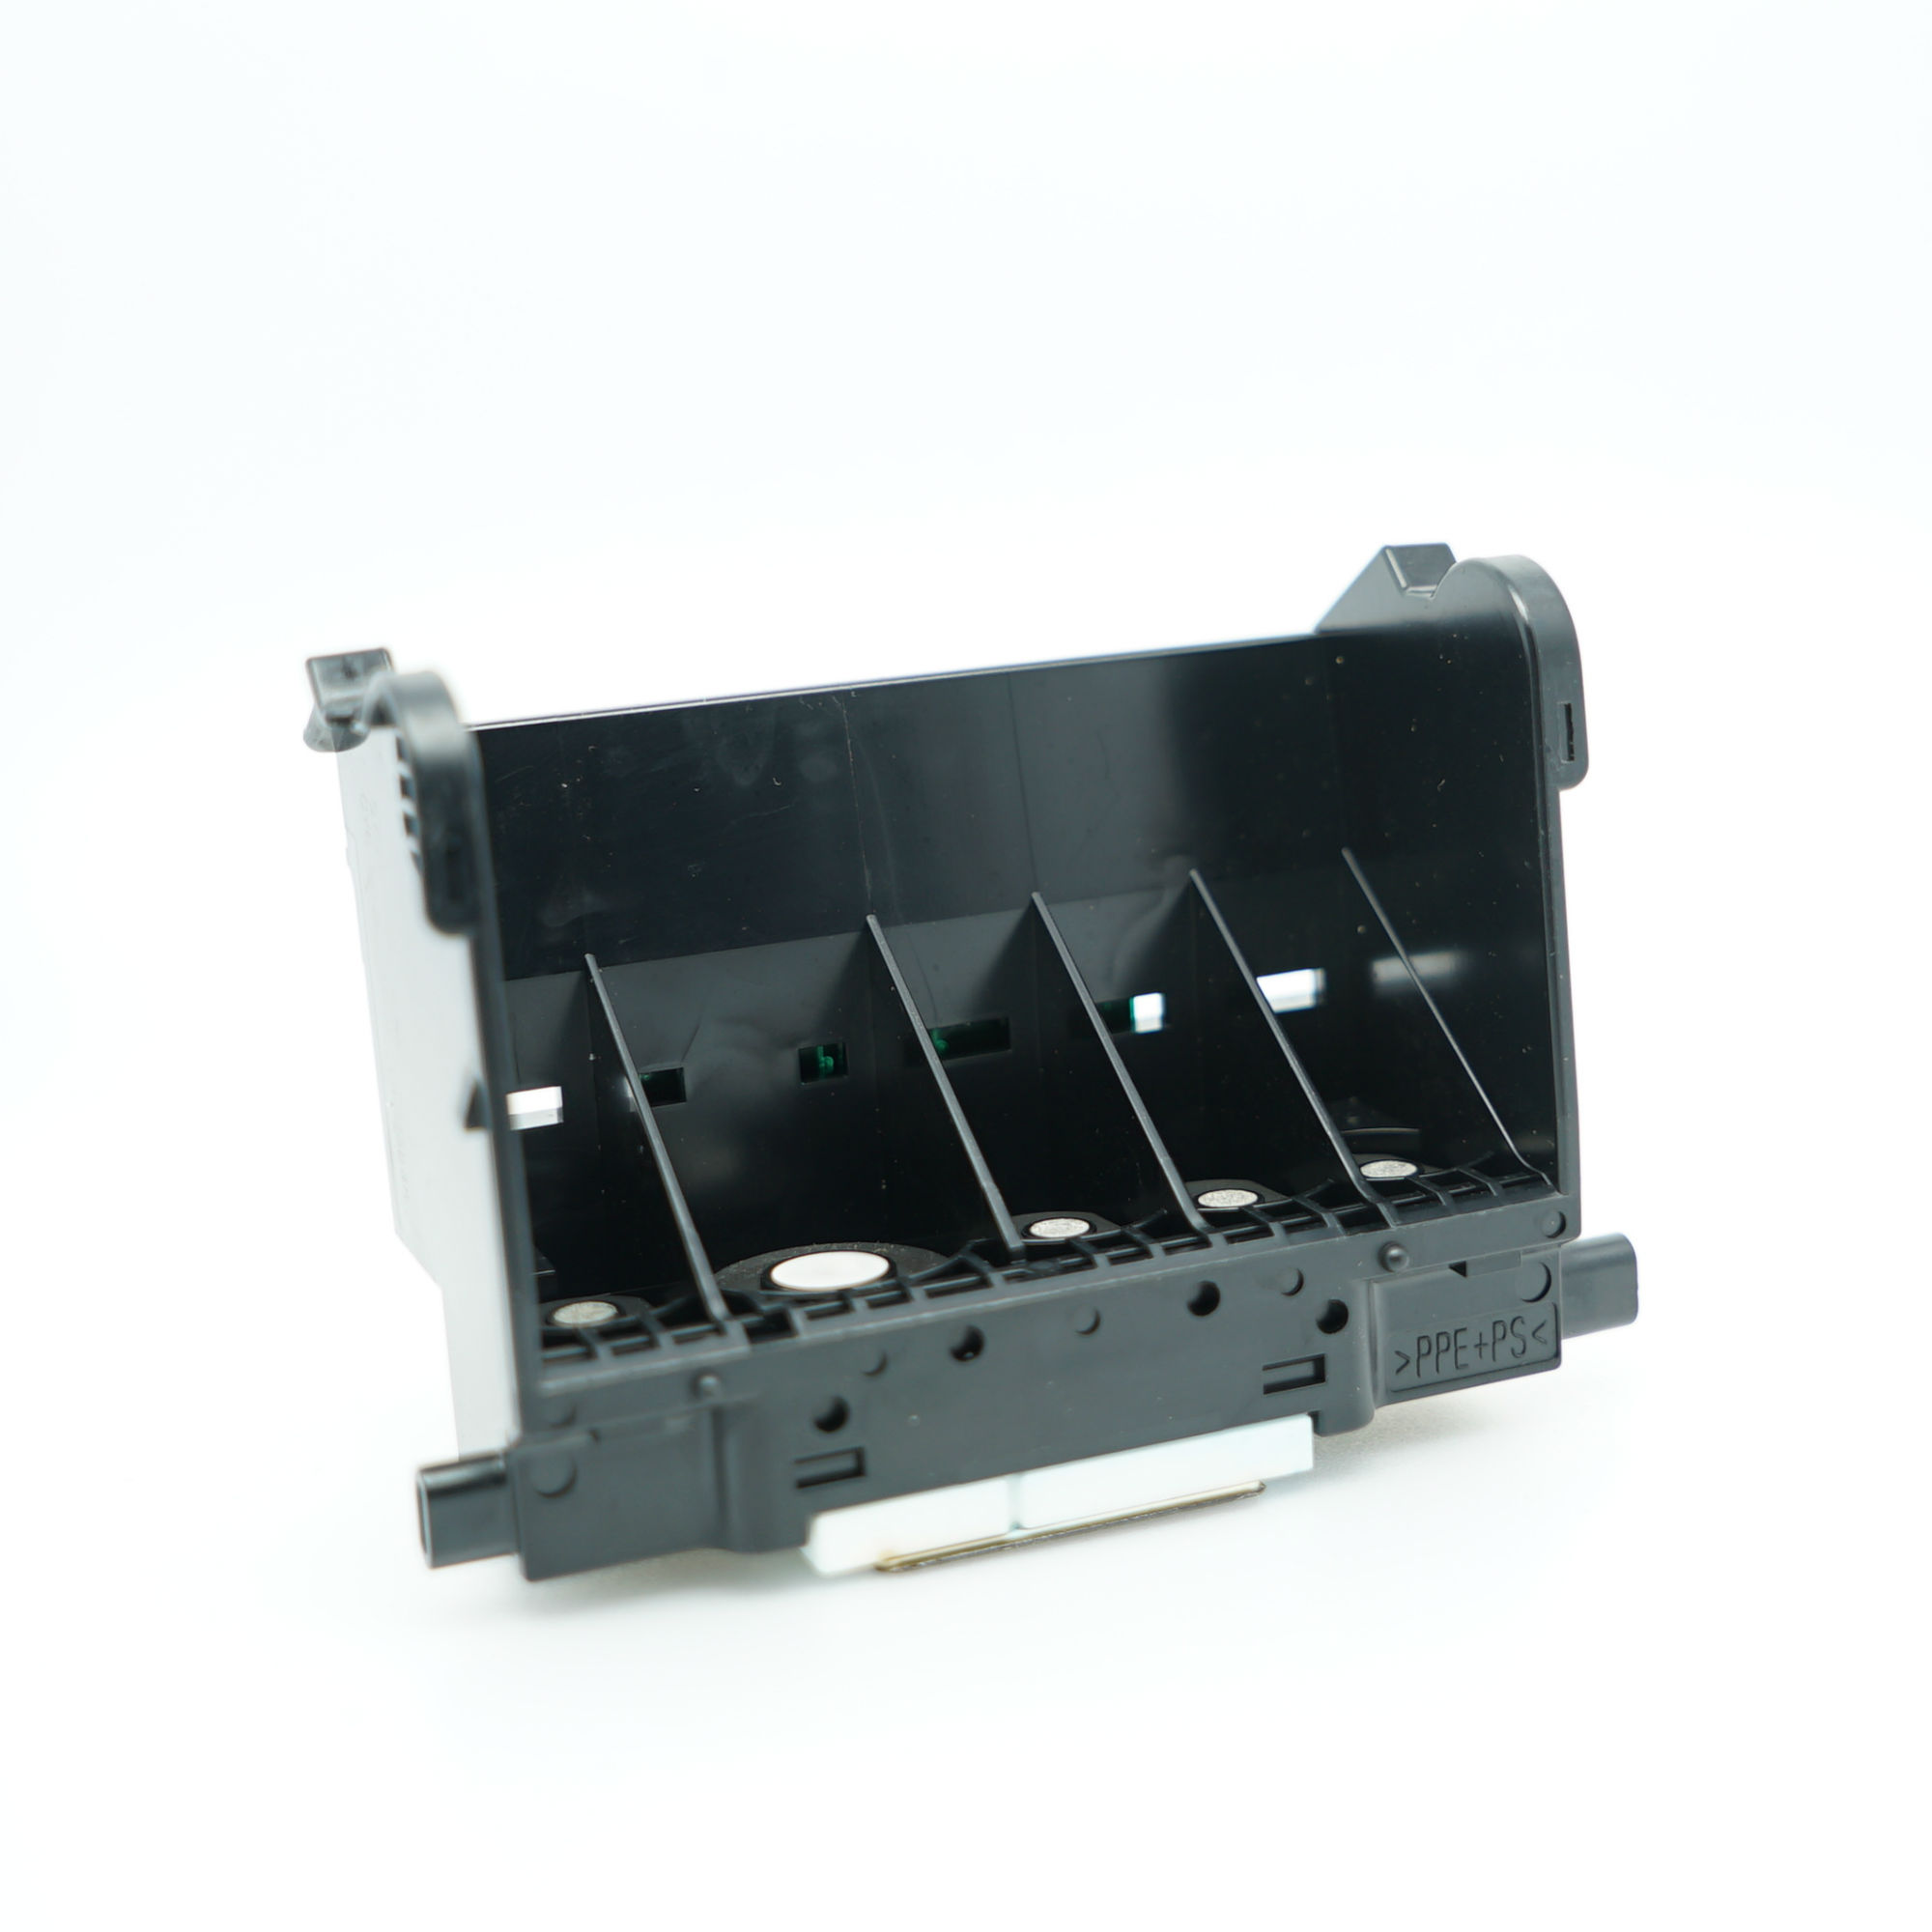 Free Shipping PRINT HEAD QY6-0067 printhead for Canon Printer IP4500 IP5300 MP610 MP810 Printer Accessory original qy6 0075 qy6 0075 000 printhead print head printer head for canon ip5300 mp810 ip4500 mp610 mx850